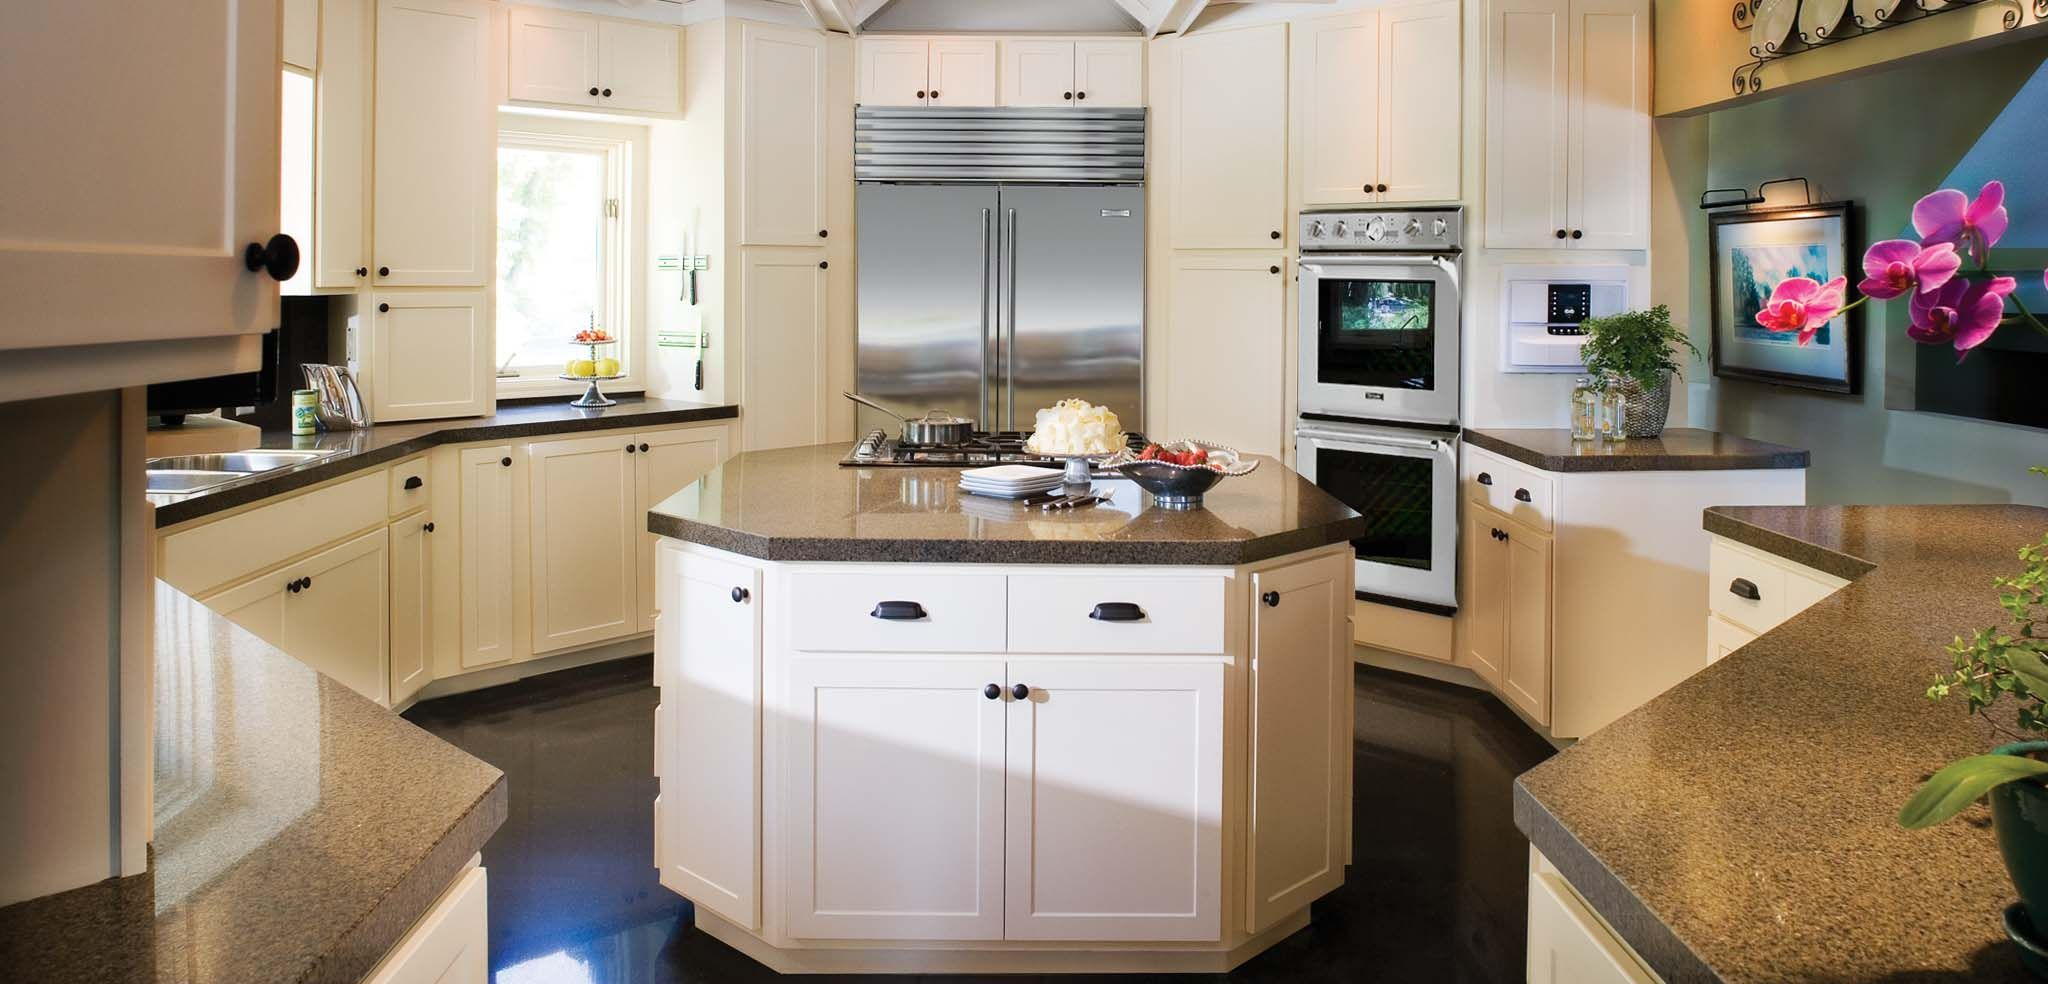 Granite Over Existing Countertops Granite & Quartz Overlay Countertops Designed To Fit Over Your .